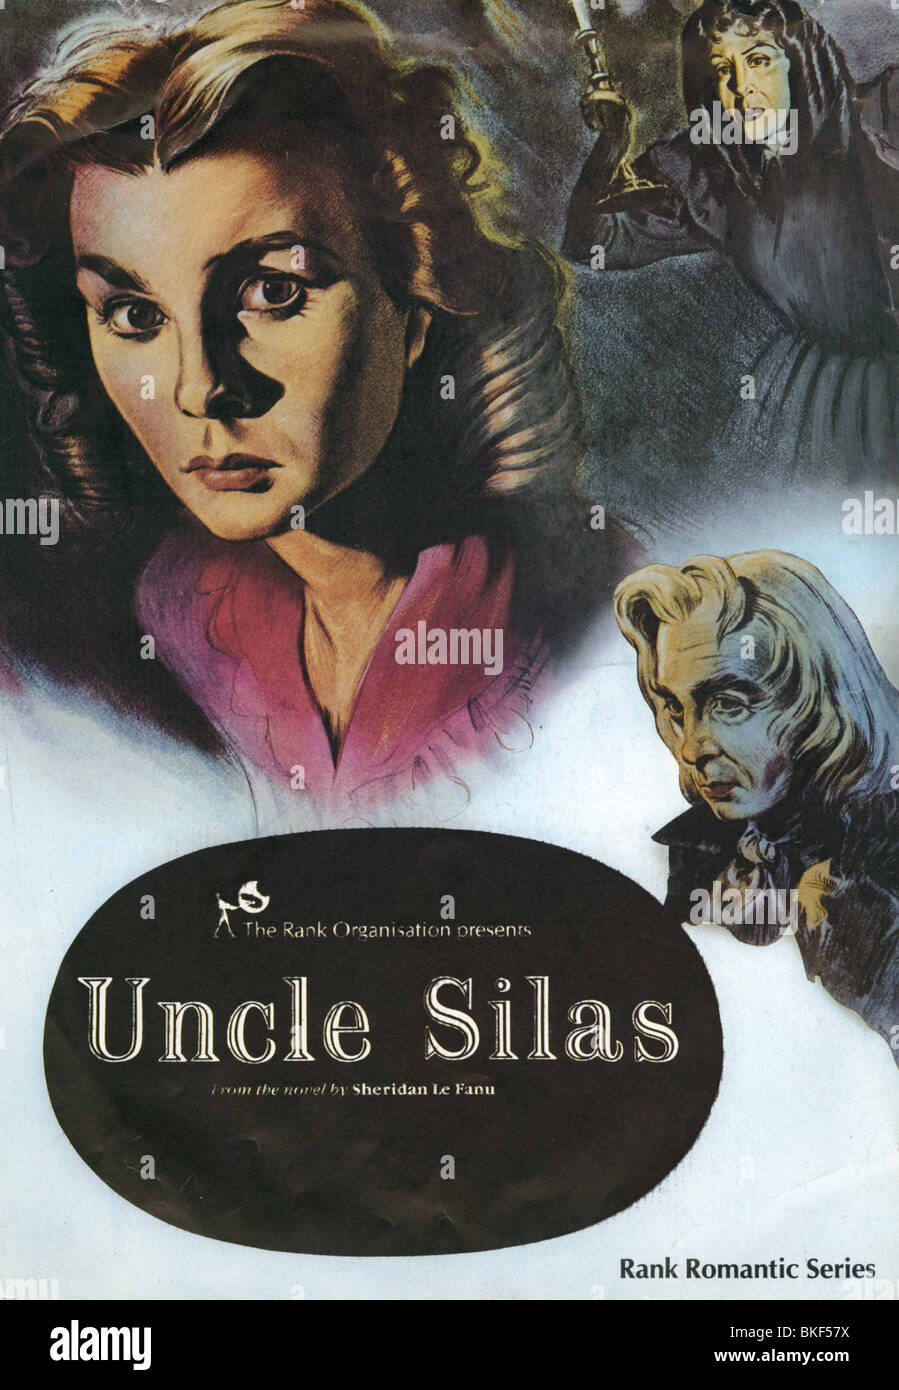 UNCLE SILAS -1947 POSTER - Stock Image